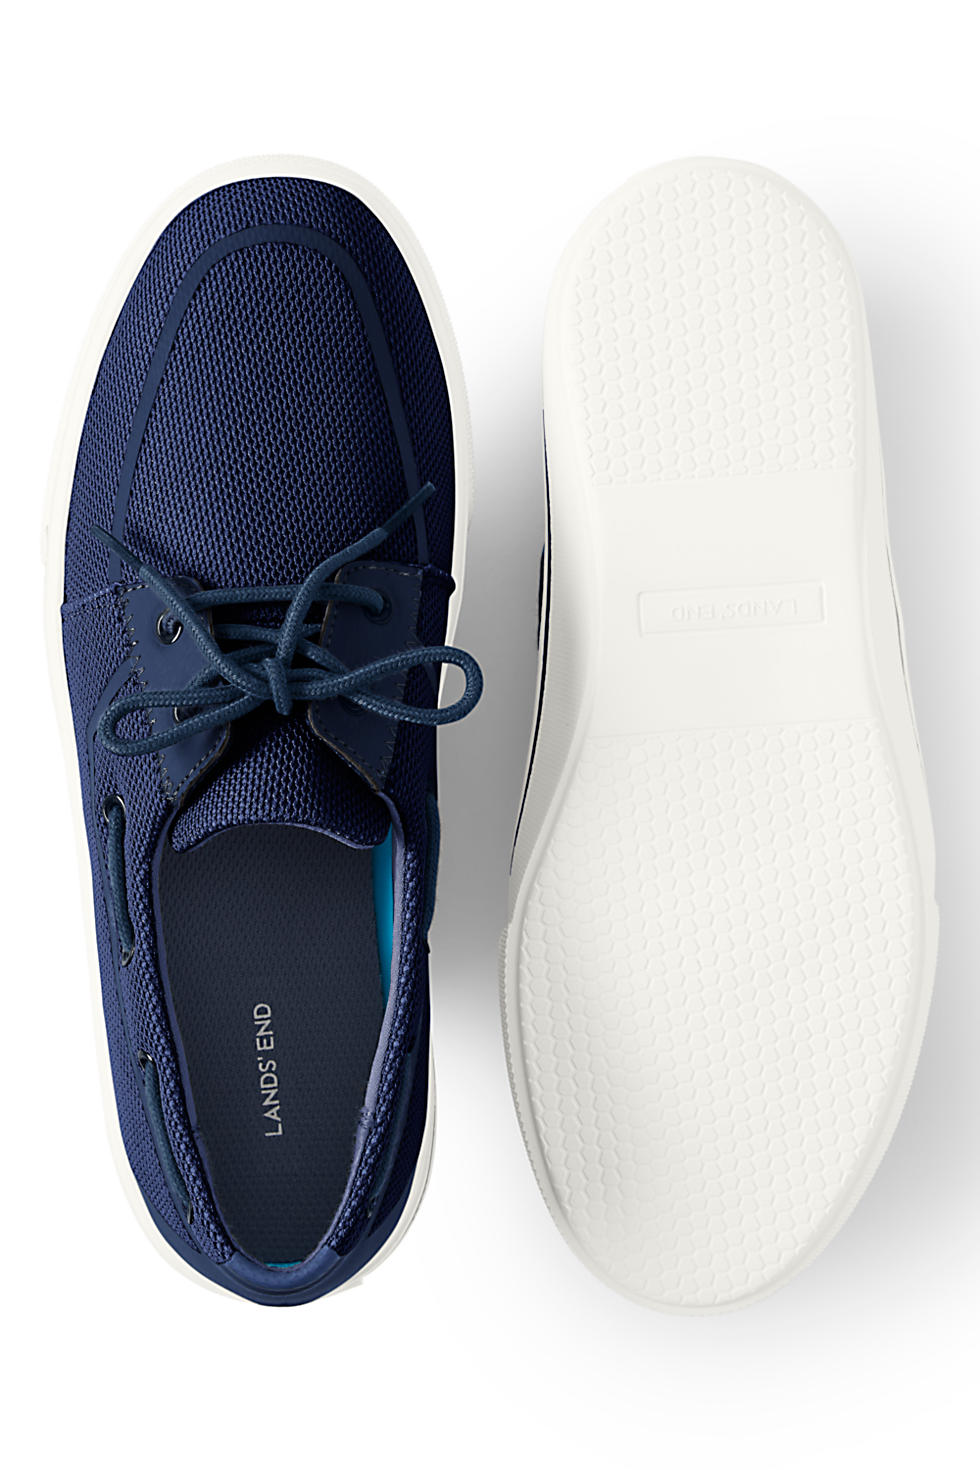 Lands' End Men's Lightweight Mesh Boat Shoes ( Light Navy)